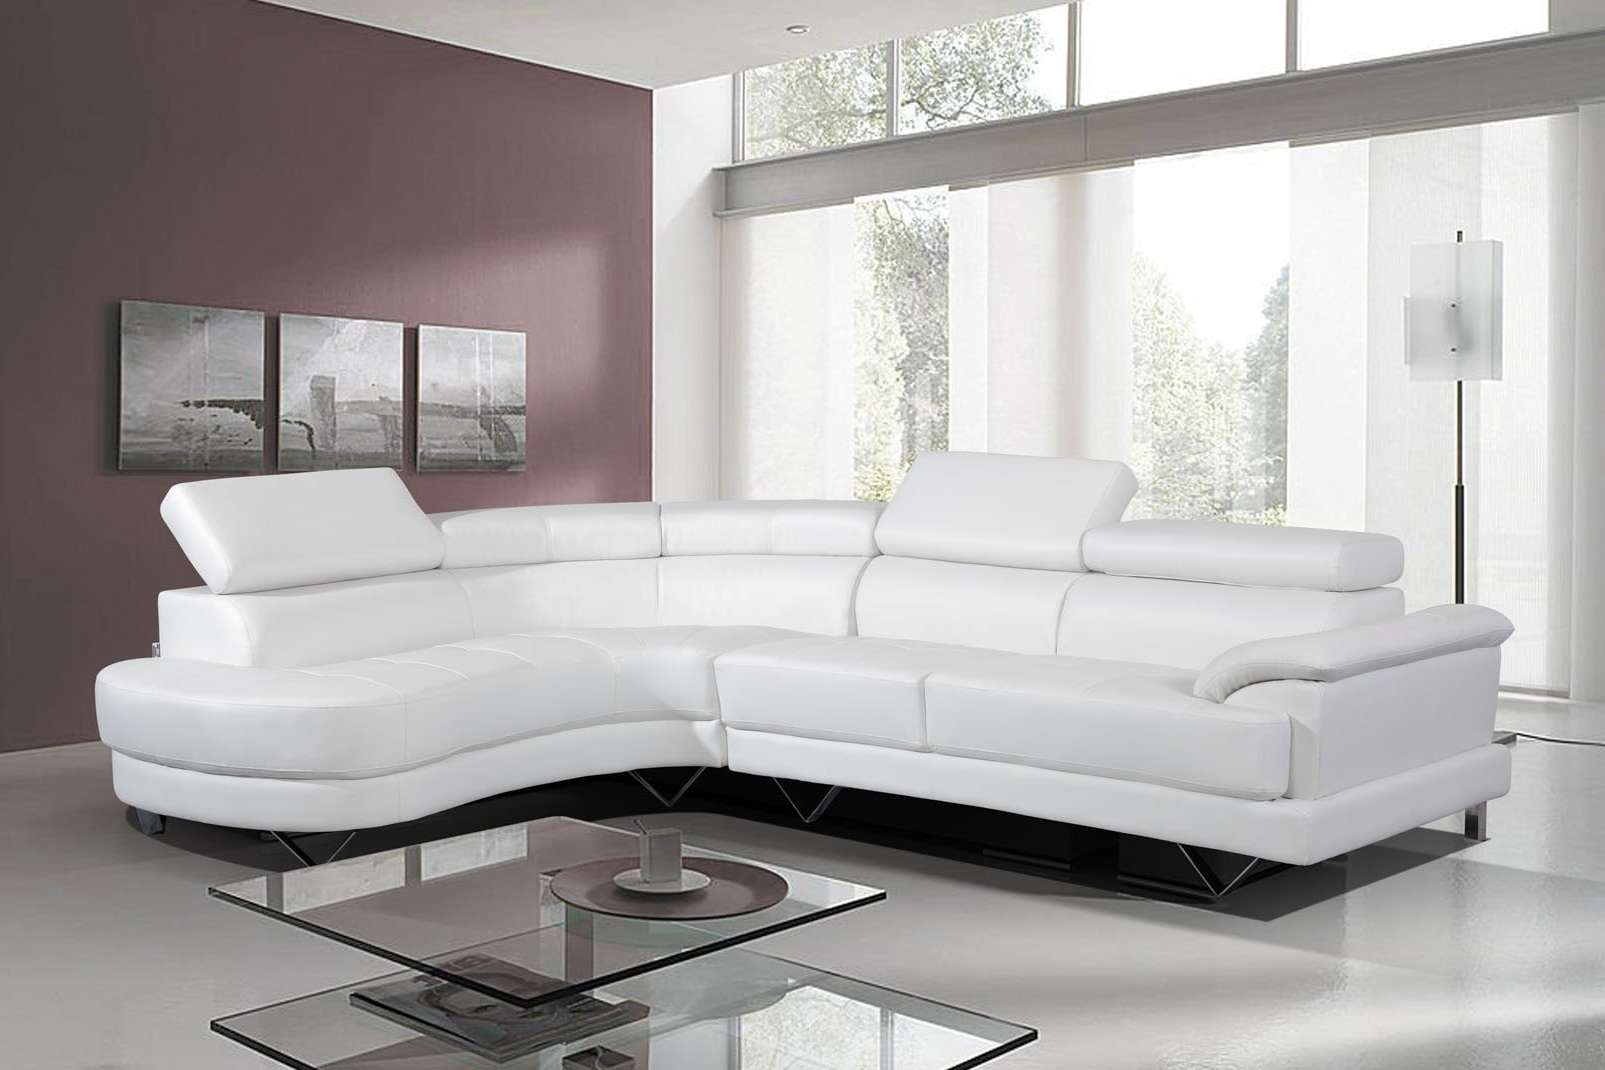 2017 Cheap White Leather Sofa – Home And Textiles Regarding White Leather Corner Sofas (View 1 of 15)